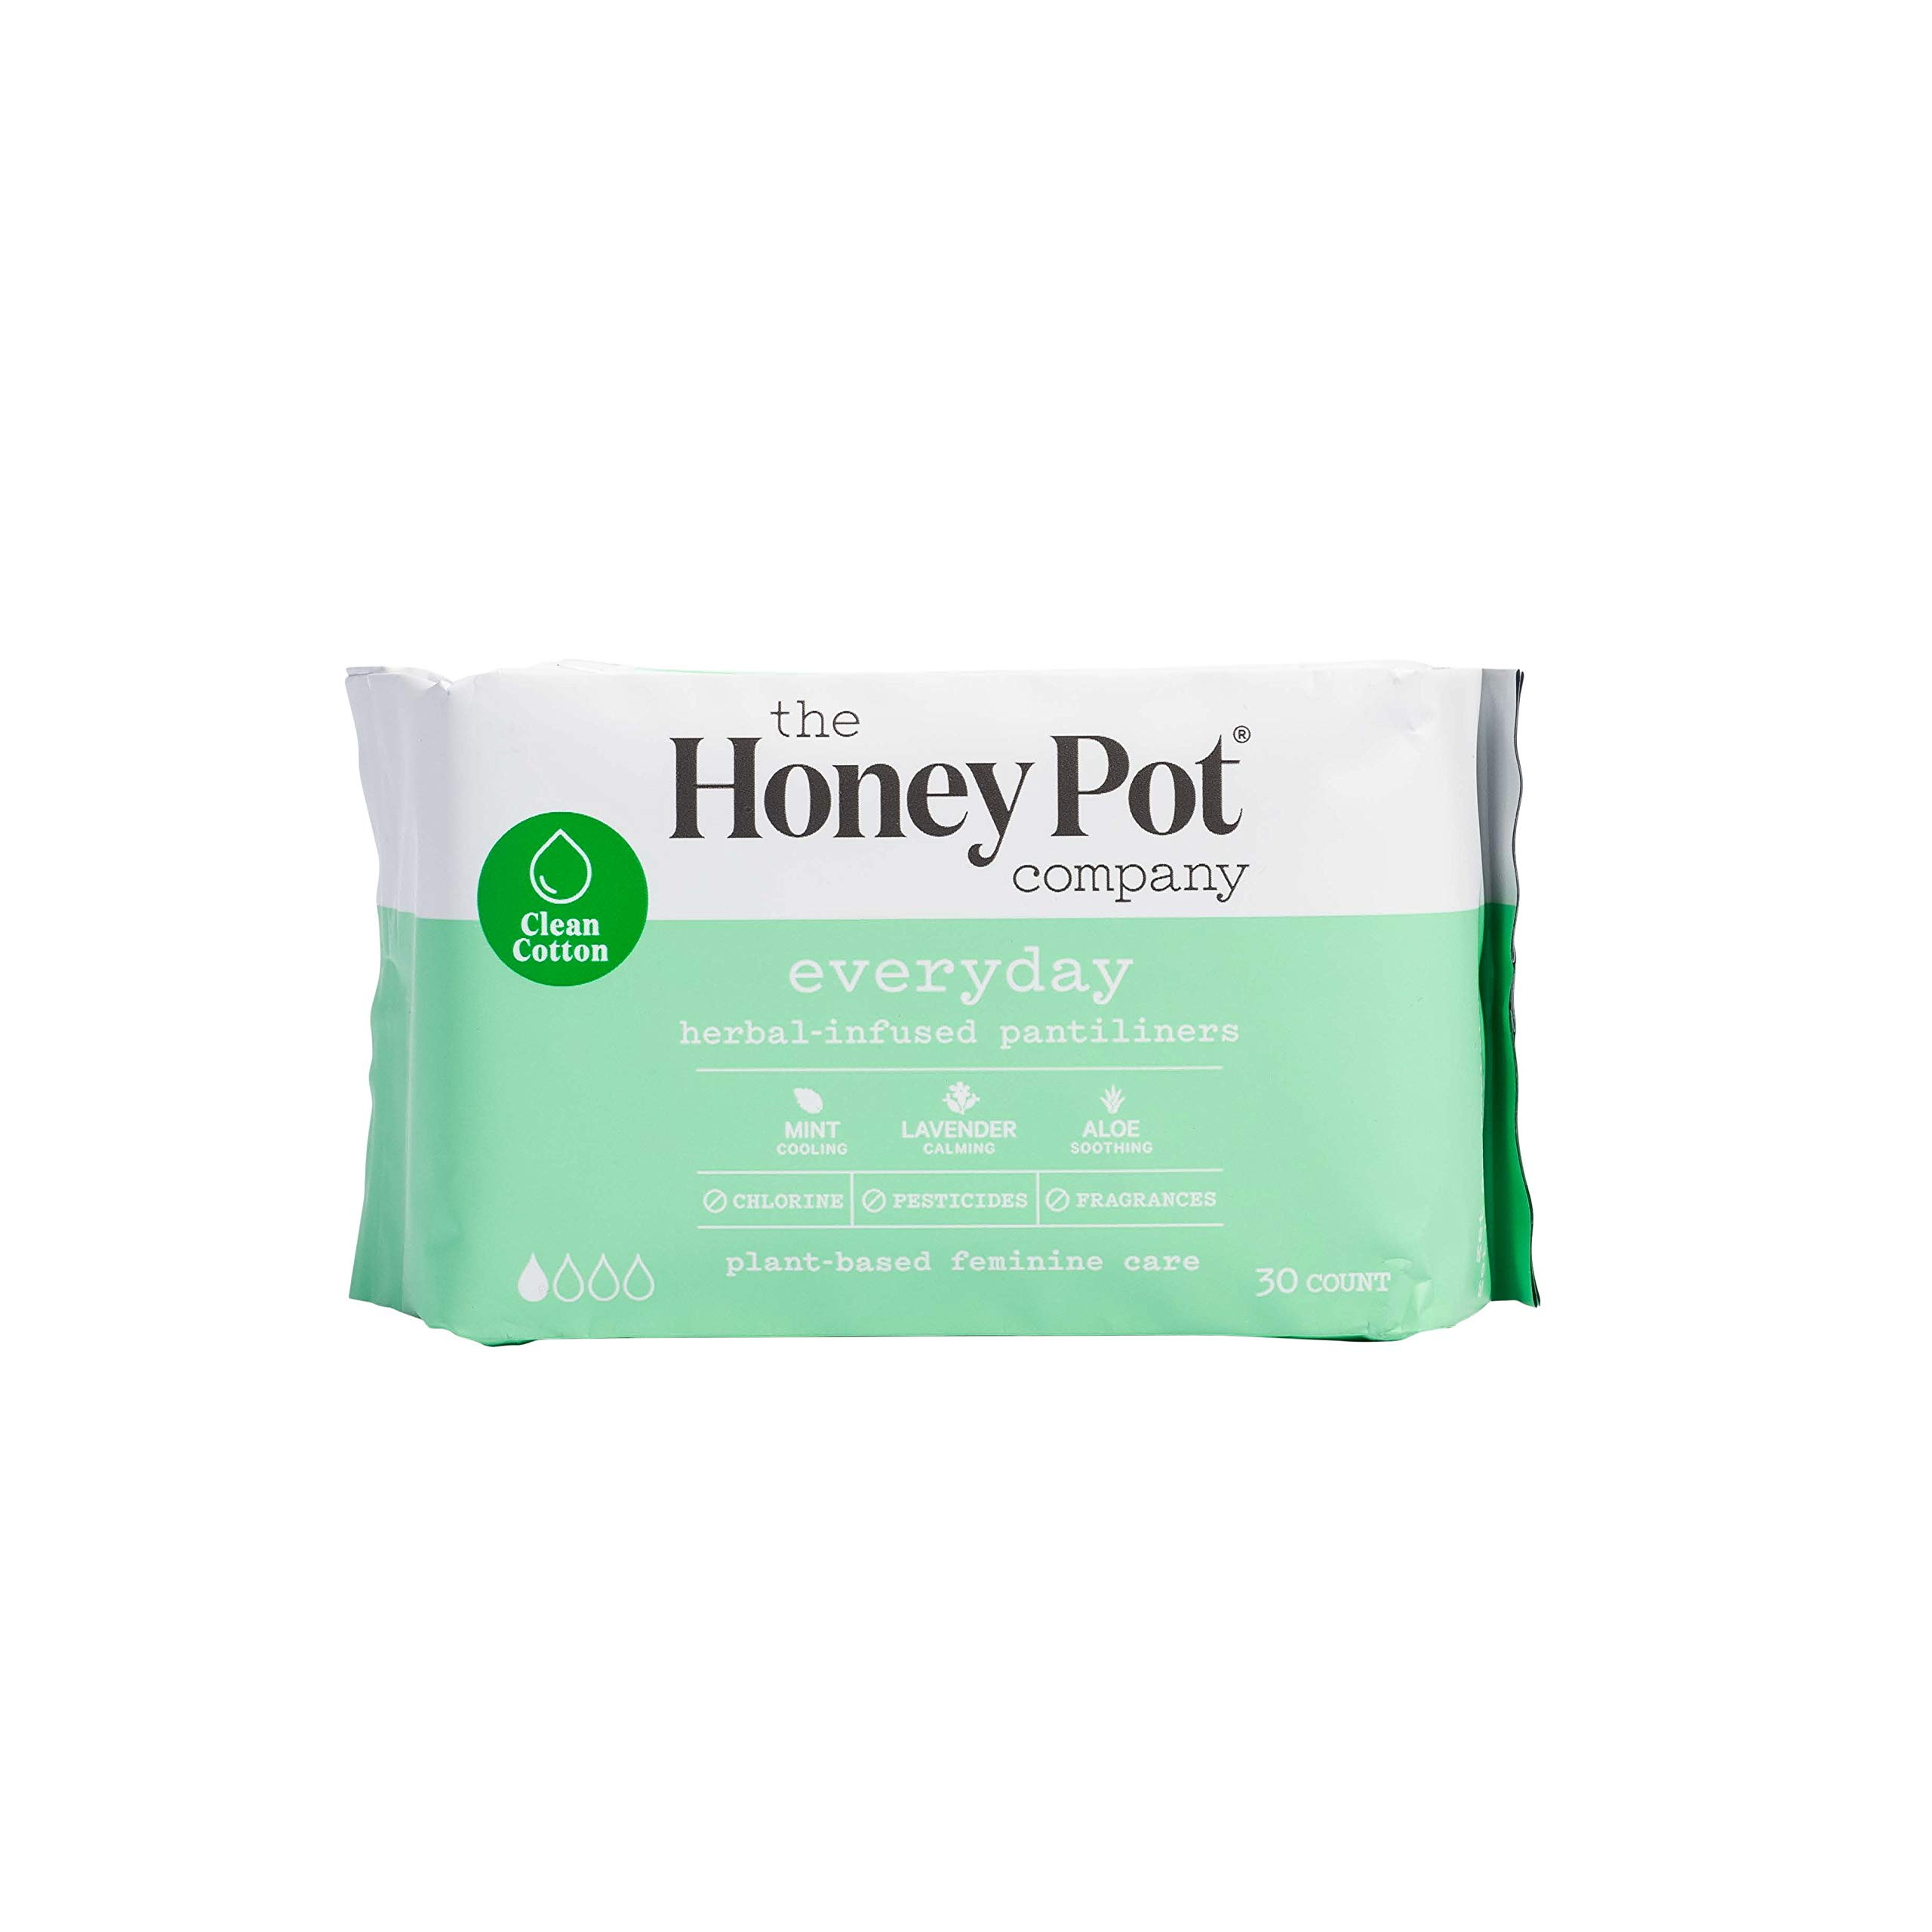 The Honey Pot Company Everyday Herbal-Infused Pantiliners | Natural Sanitary Napkin Liners | Plant-Based Feminine Care | Chlorine-, Pesticide-, Paraben-, Carcinogen-, Fragrance-Free | 30 Liner Count